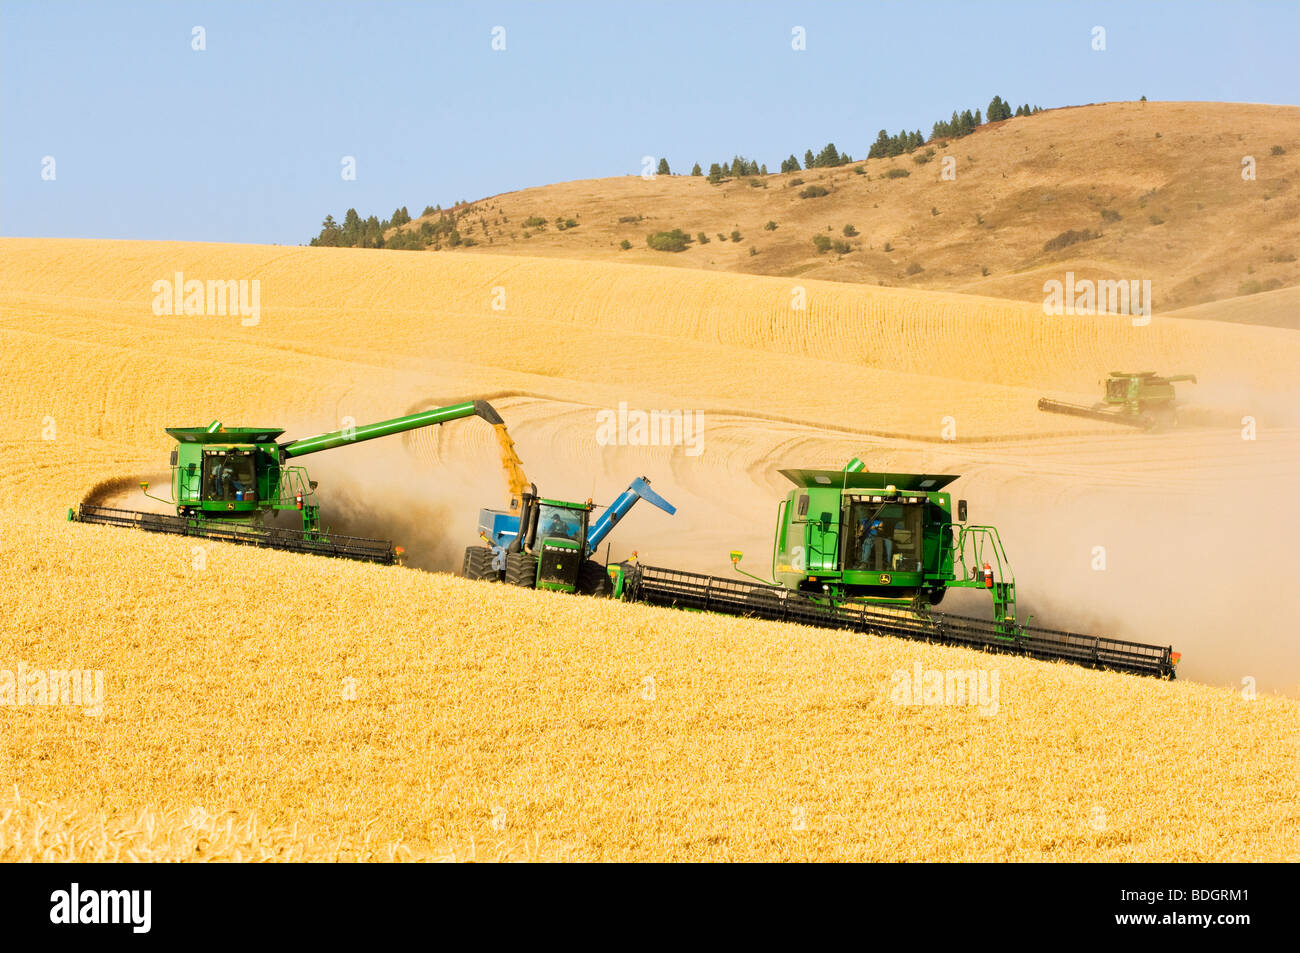 "Two combines harvest Soft White wheat on rolling hillside terrain while one combine unloads into a grain wagon ""on - Stock Image"